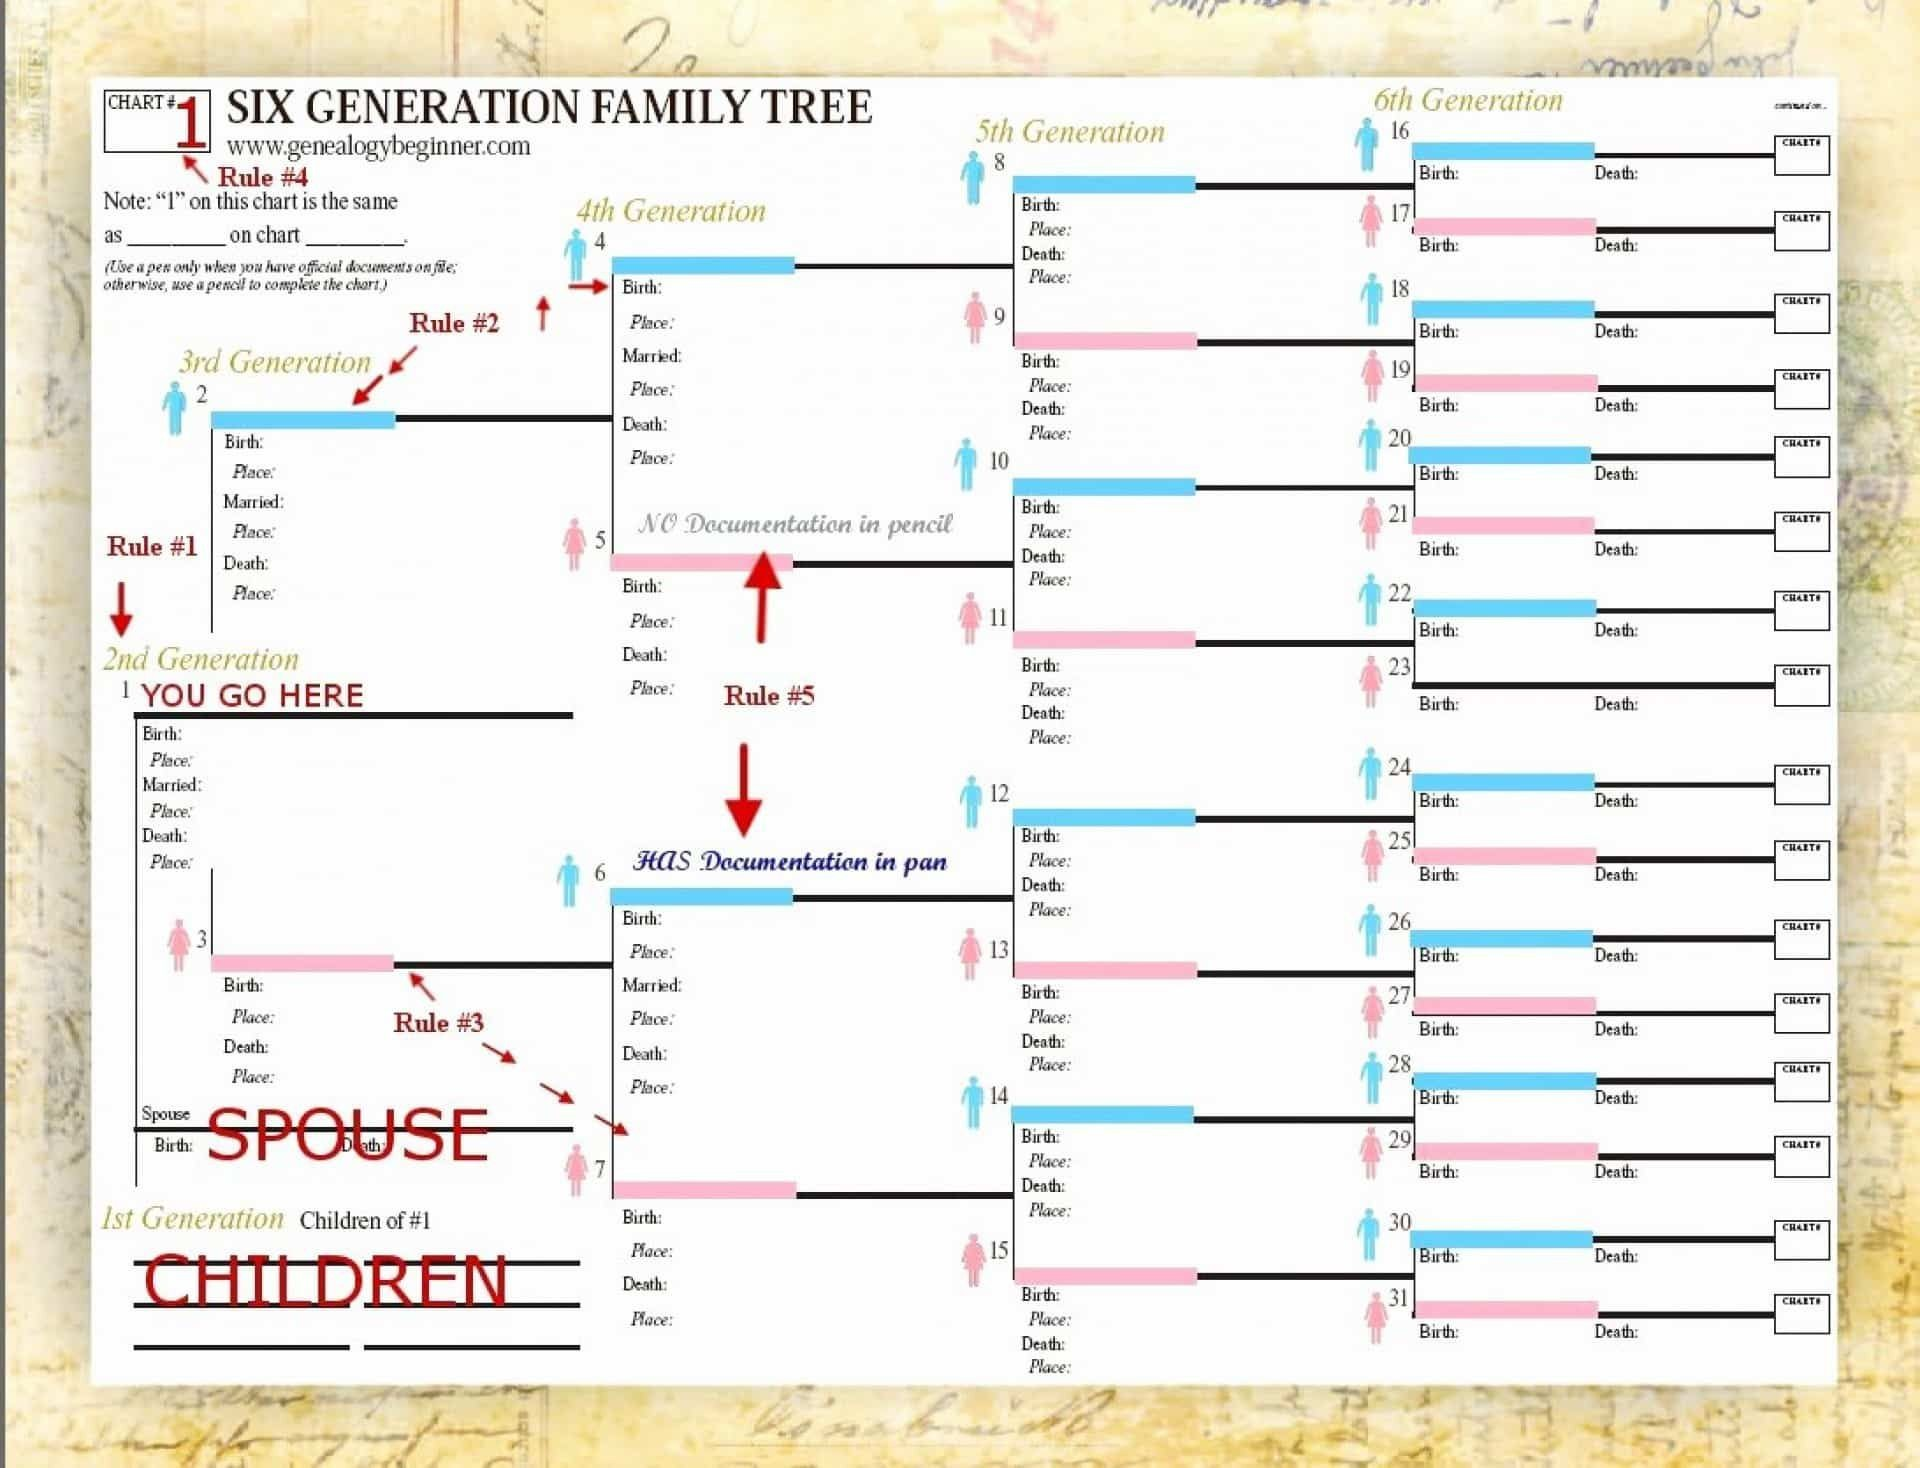 003 Fantastic Excel Family Tree Template Highest Clarity  10 Generation Download Free Editable1920